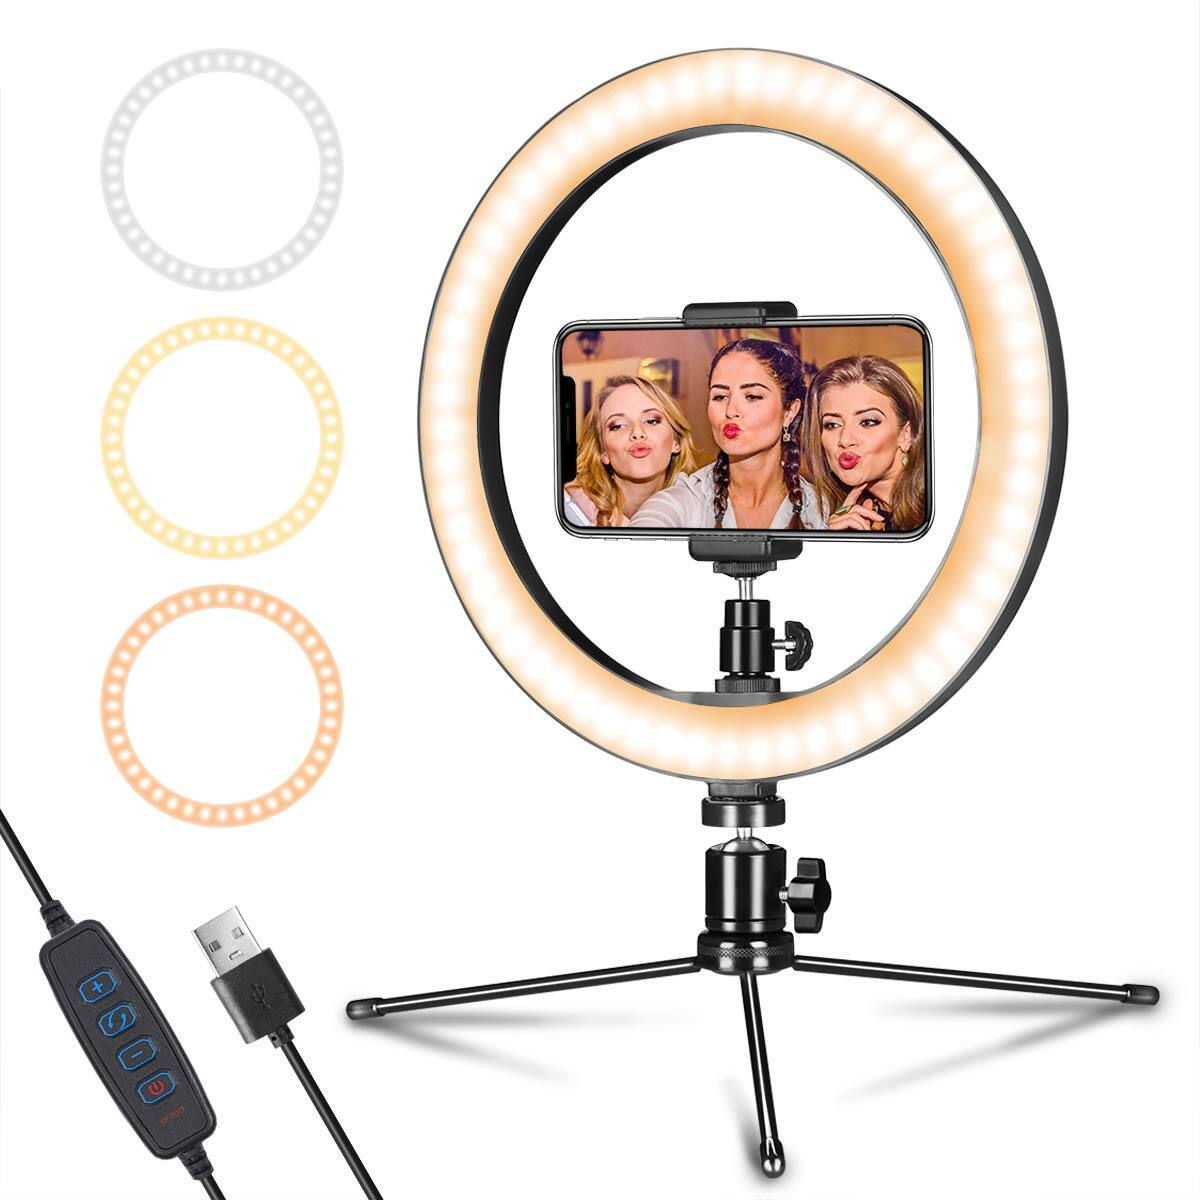 "10"" LED Selfie Ring Light w/ Tripod Stand and Cellphone Holder $22.07 + Free Shipping w/ Prime or on $25+"